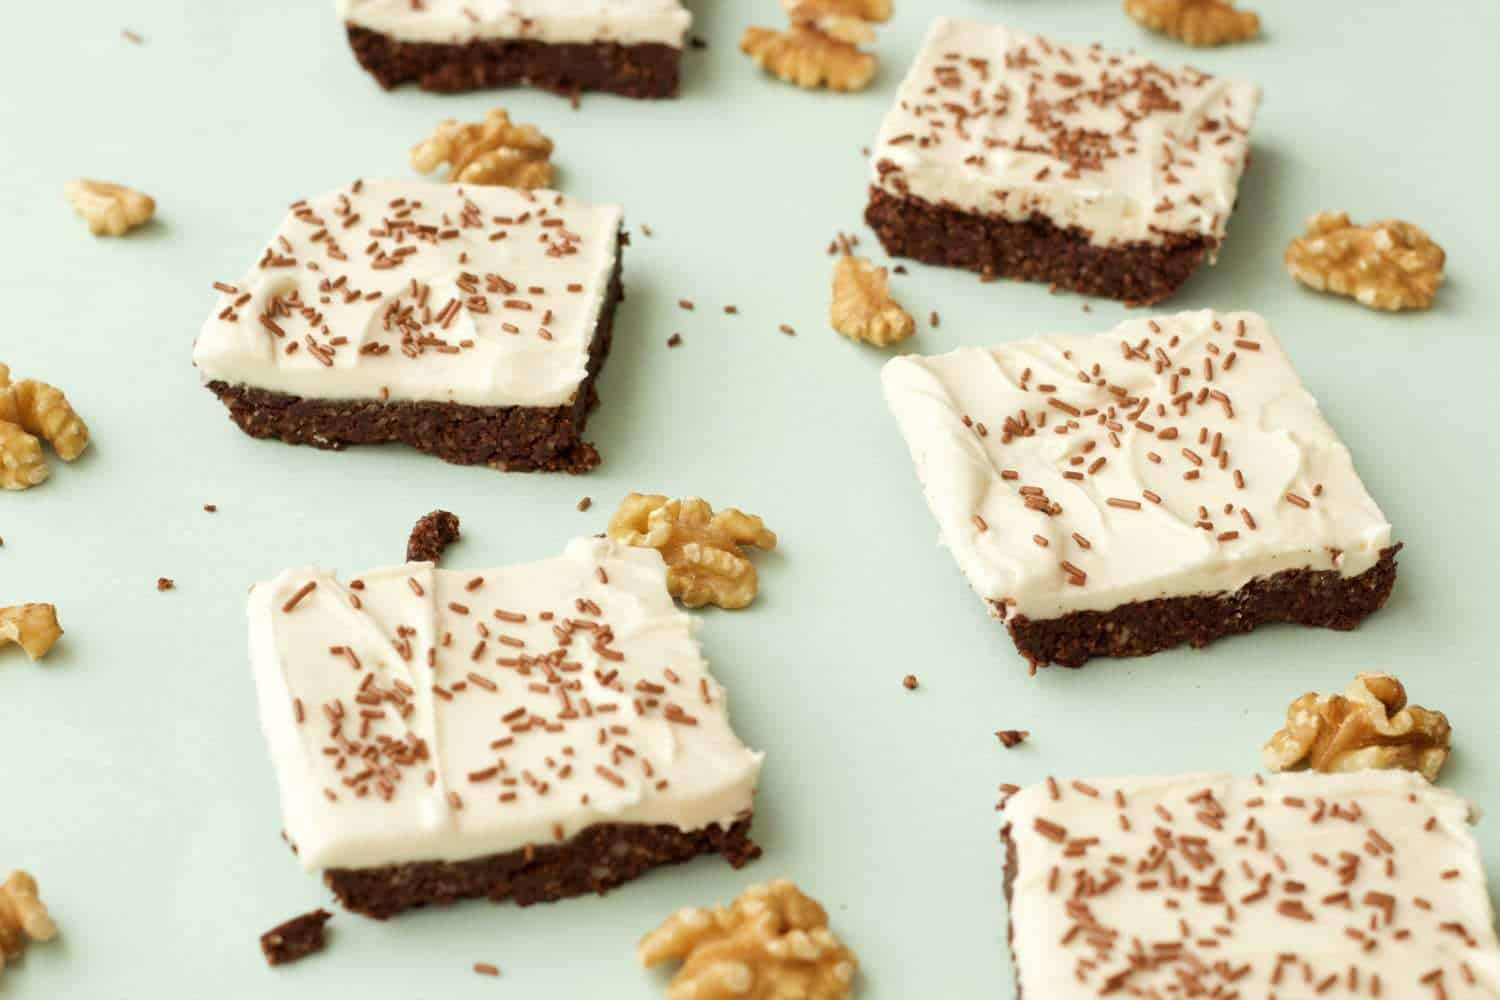 Vegan Top Deck No Bake Brownies #vegan #lovingitvegan #glutenfree #dairyfree #dessert